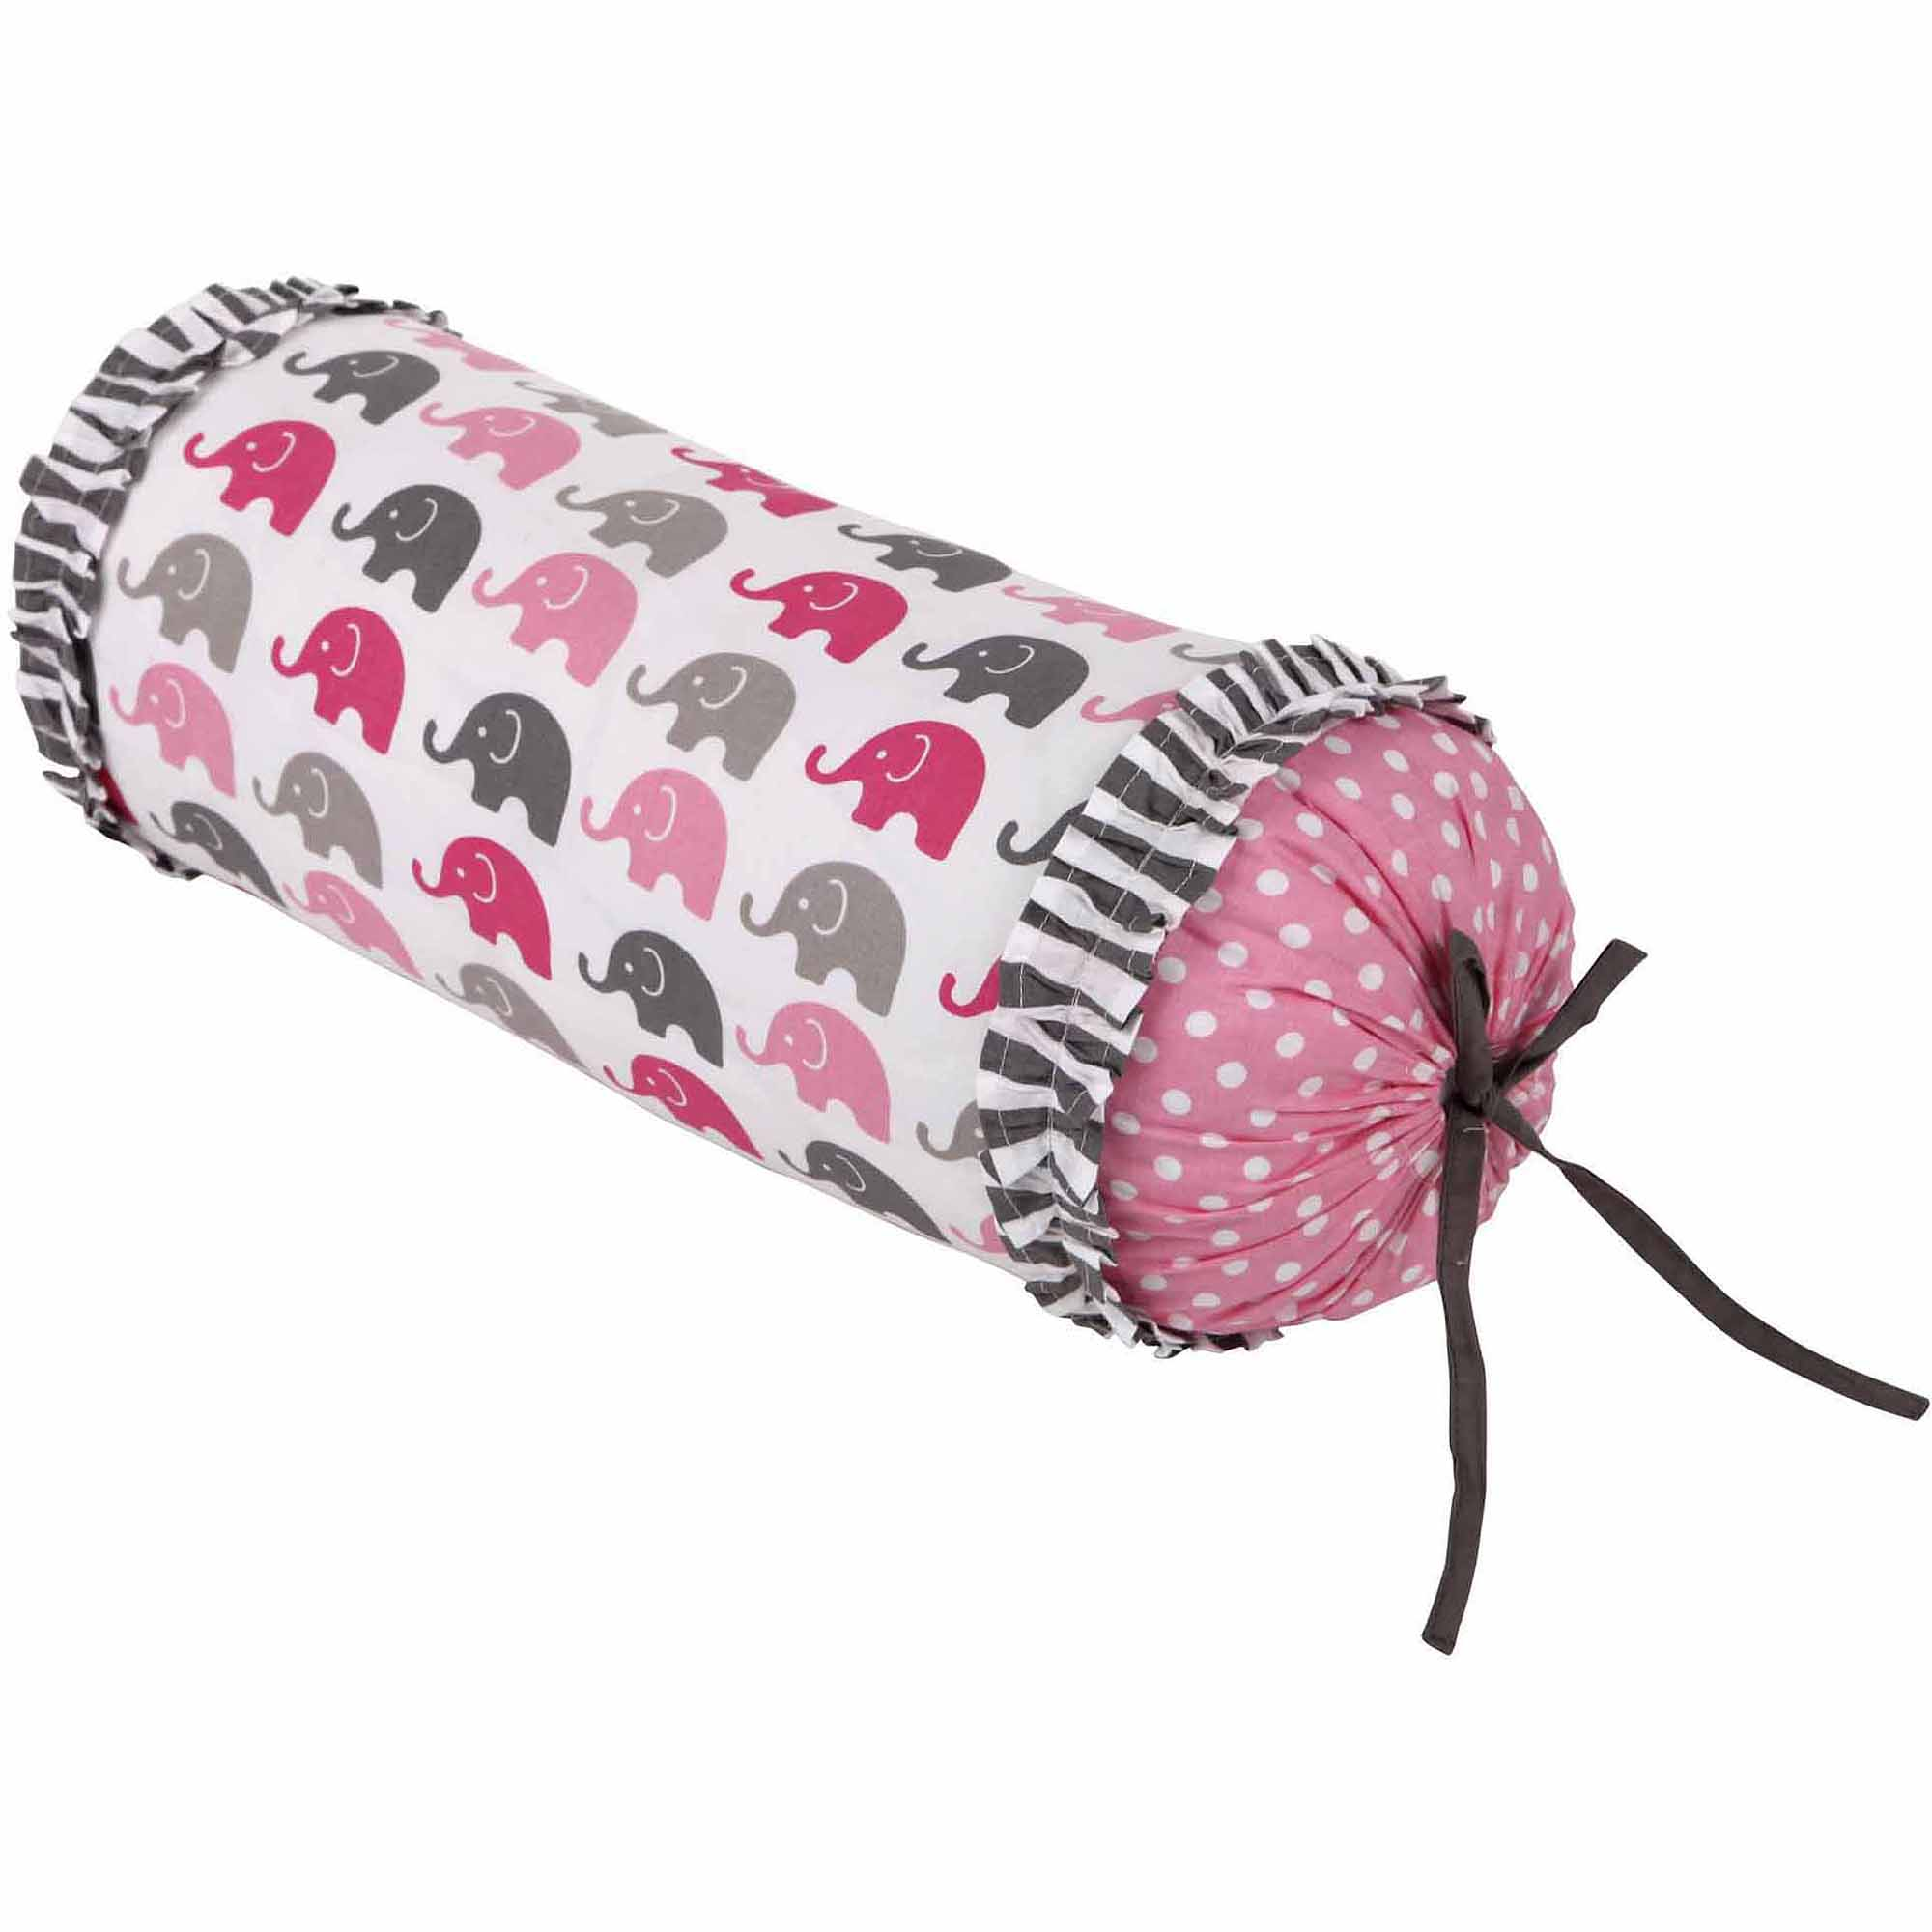 Bacati Elephants Neckroll with 100% Cotton cover and polyfilled insert Pillow, Pk/Gray